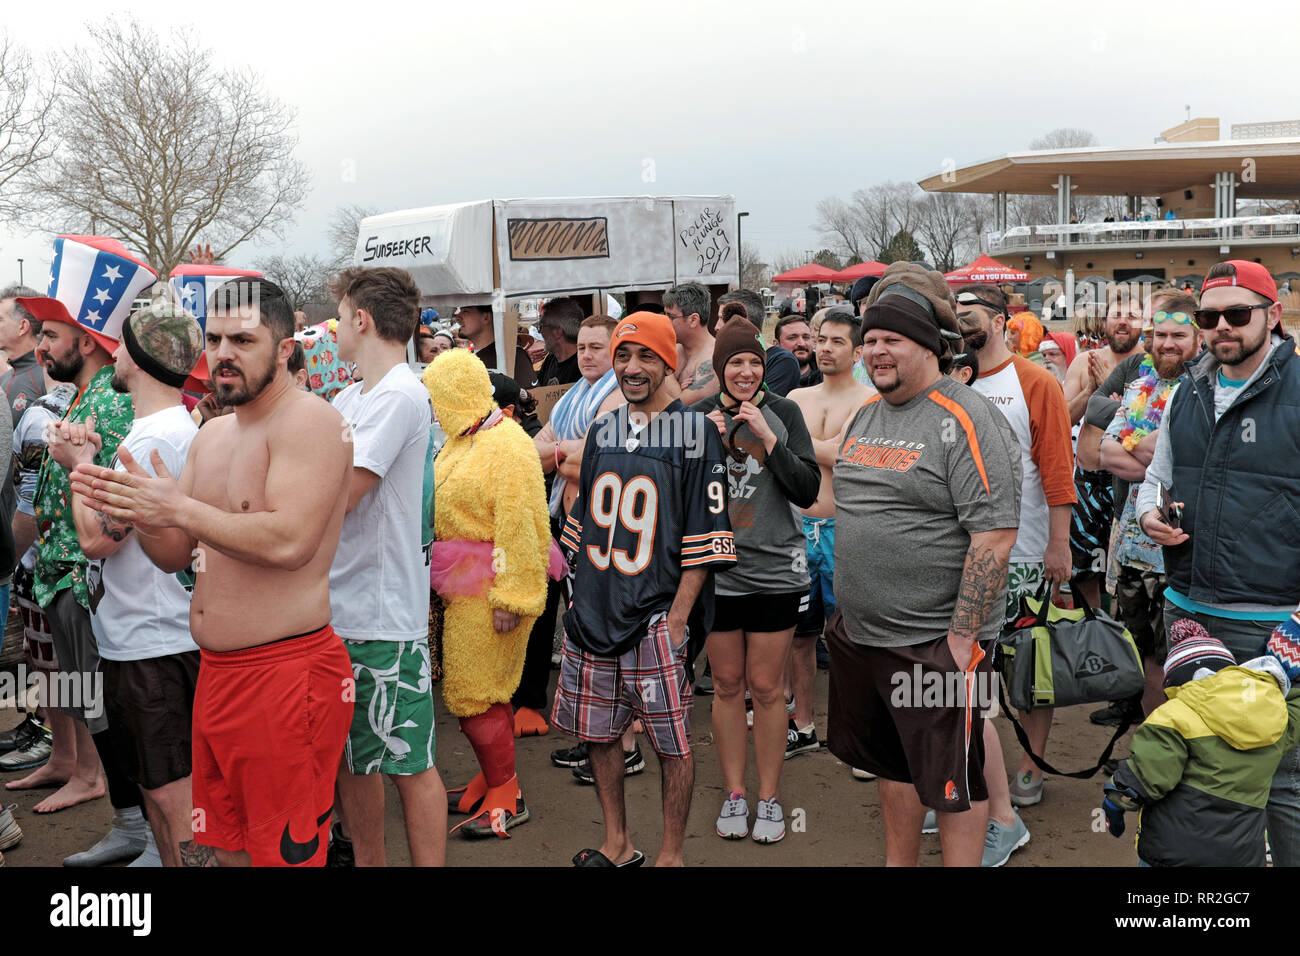 Cleveland, Ohio, USA.  23rd Feb, 2019.  Participants in the 2019 Cleveland Polar Plunge to benefit the Special Olympics brave the winter cold air before taking the plunge into the ice-filled waters of Lake Erie.  This annual event draws participants and spectators to the Cleveland Metroparks Edgewater Park on the shores of Lake Erie for a fun-filled wintertime event.  Credit: Mark Kanning/Alamy Live News. - Stock Image